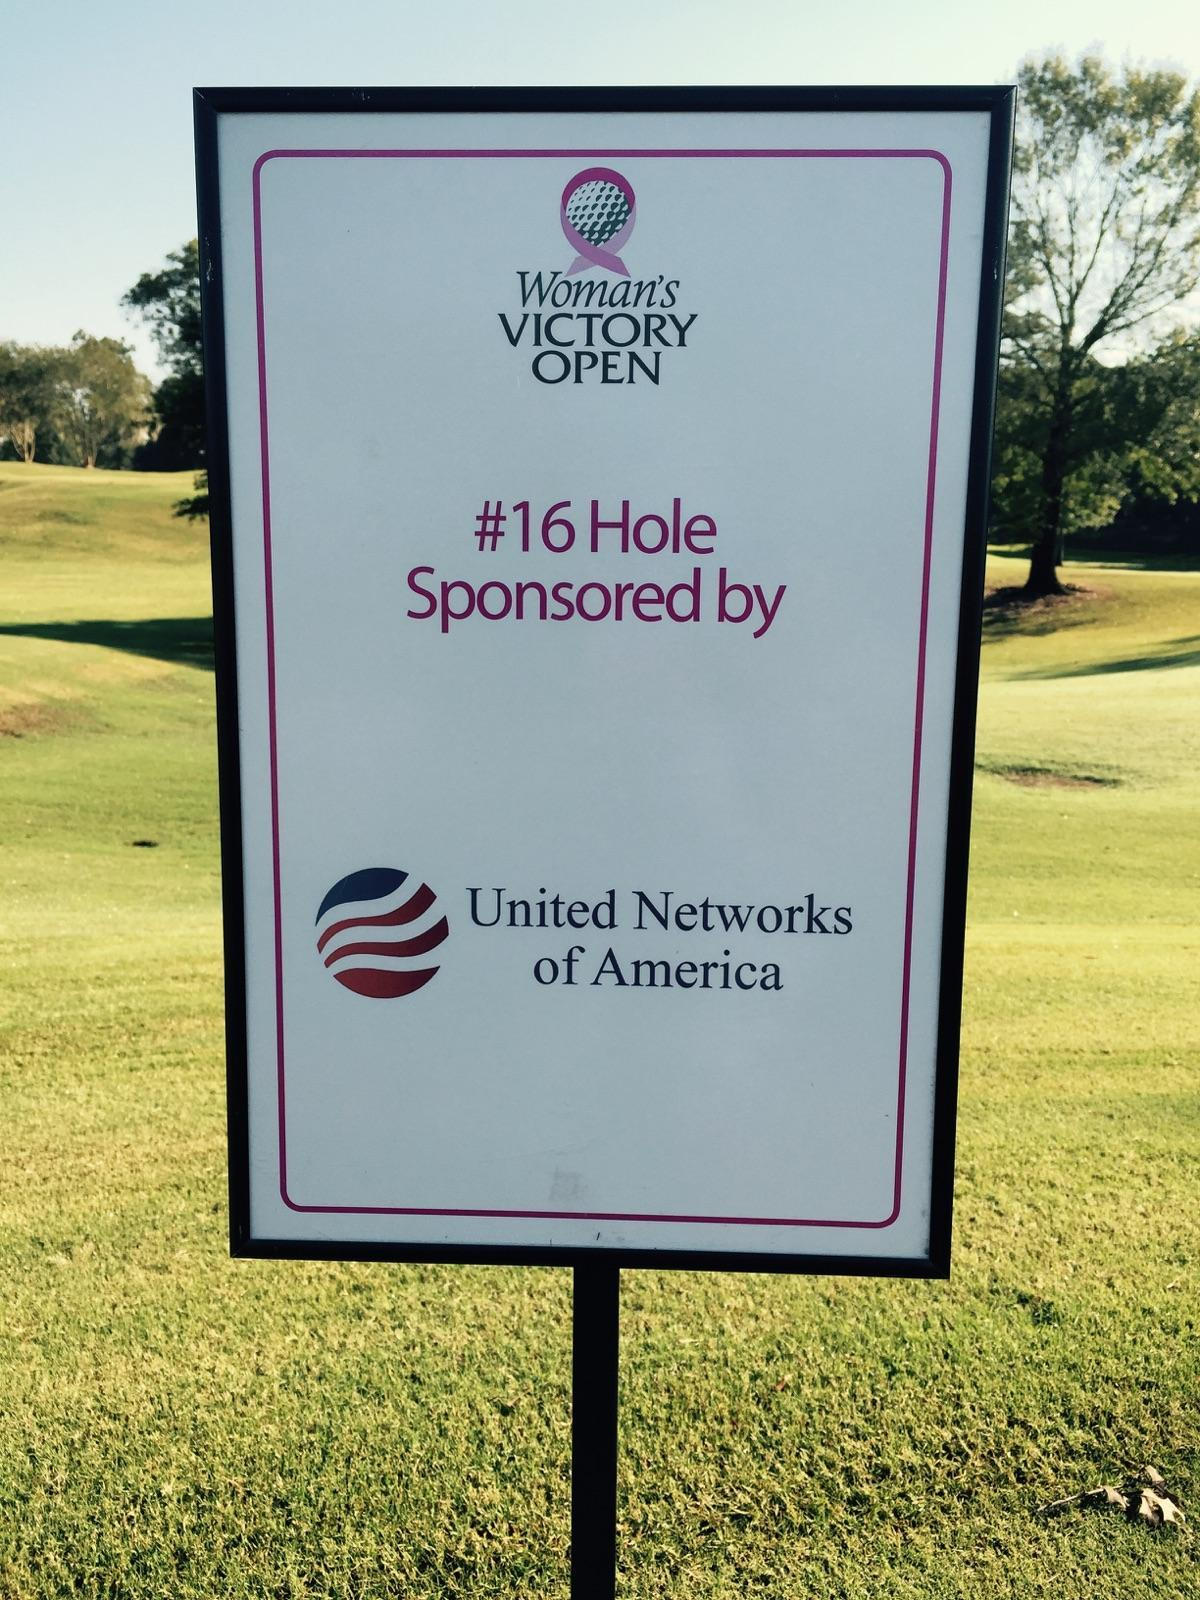 United Networks of America is a proud supporter of the Woman's Victory Open